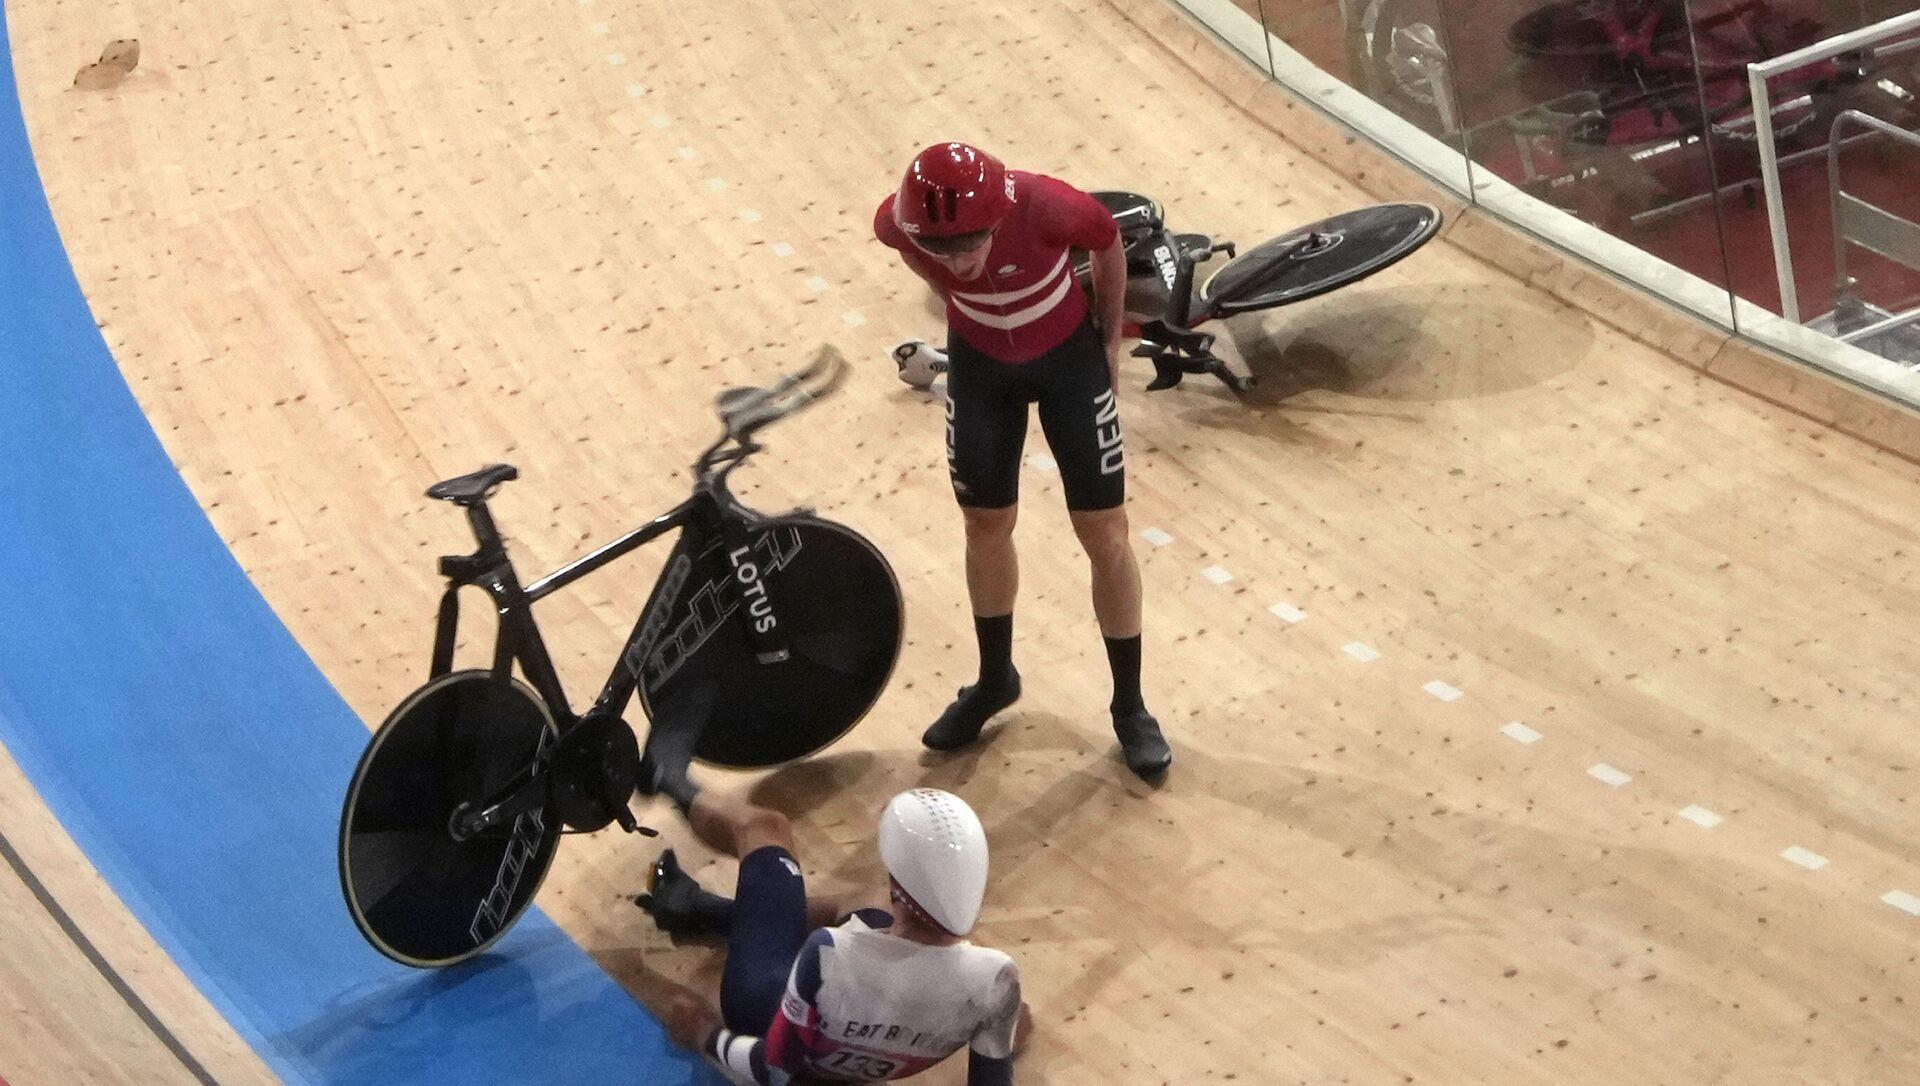 Frederik Madsen of Team Denmark and Charlie Tanfield of Team Britain (133) get up after crashing during the track cycling men's team pursuit at the 2020 Summer Olympics, Tuesday, Aug. 3, 2021, in Izu, Japan. - Sputnik International, 1920, 03.08.2021